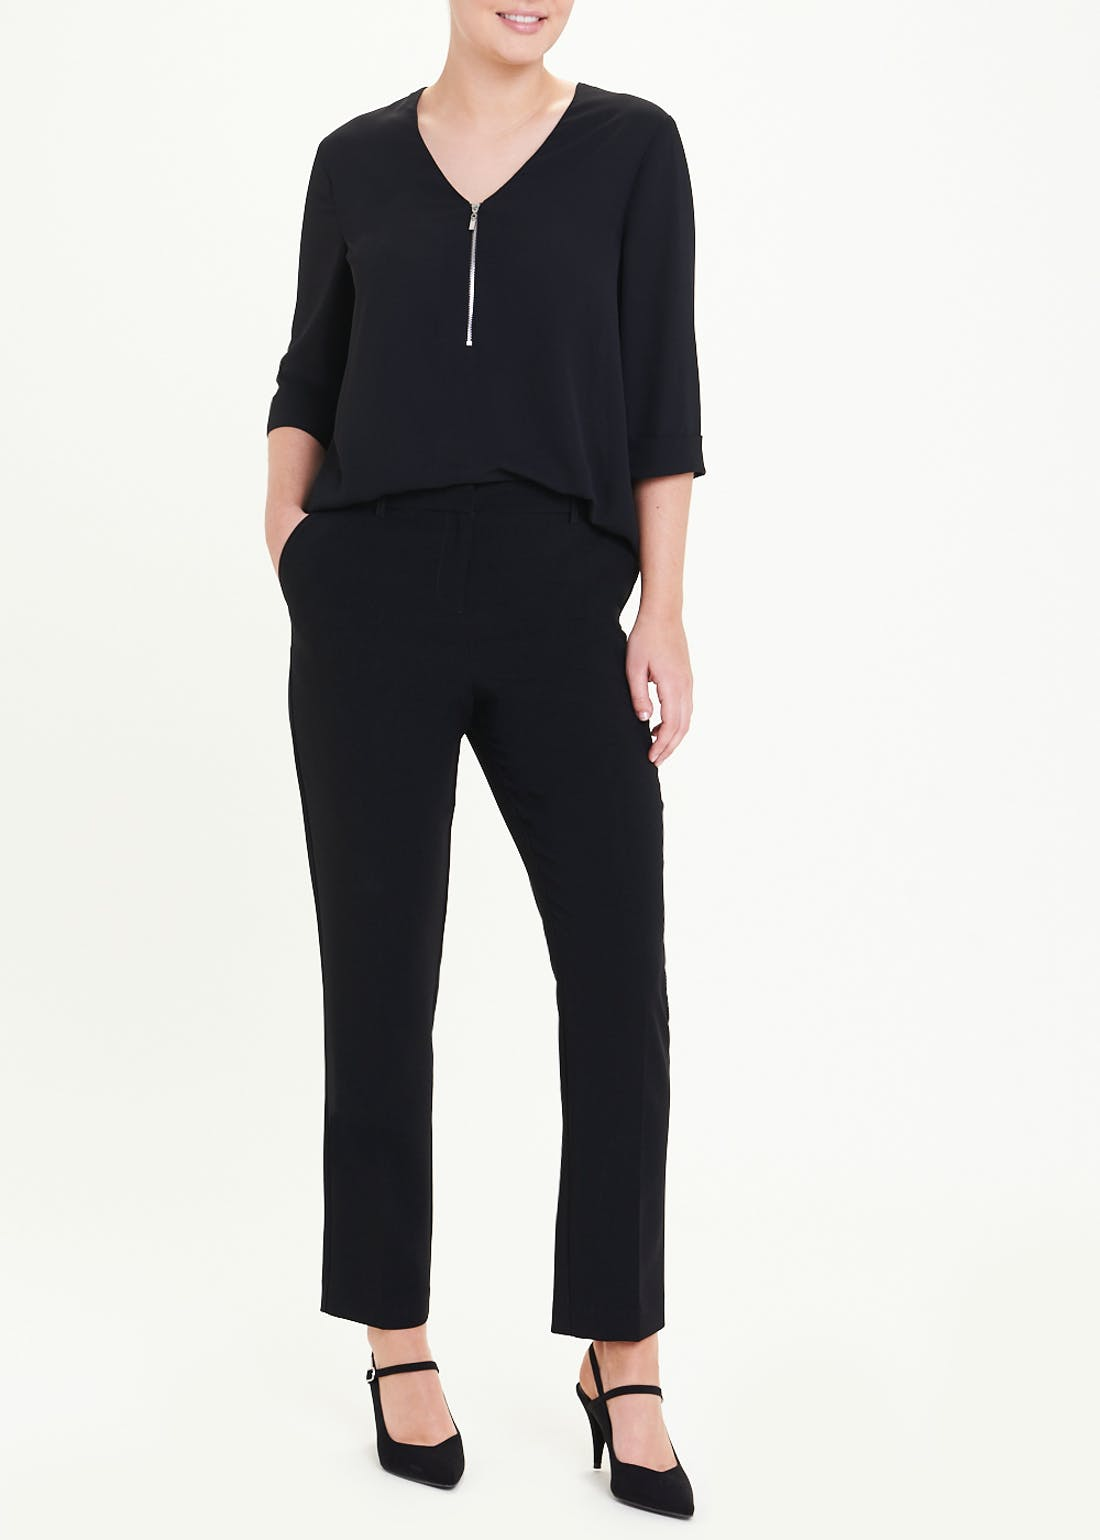 Black 3/4 Sleeve Zip Front Blouse